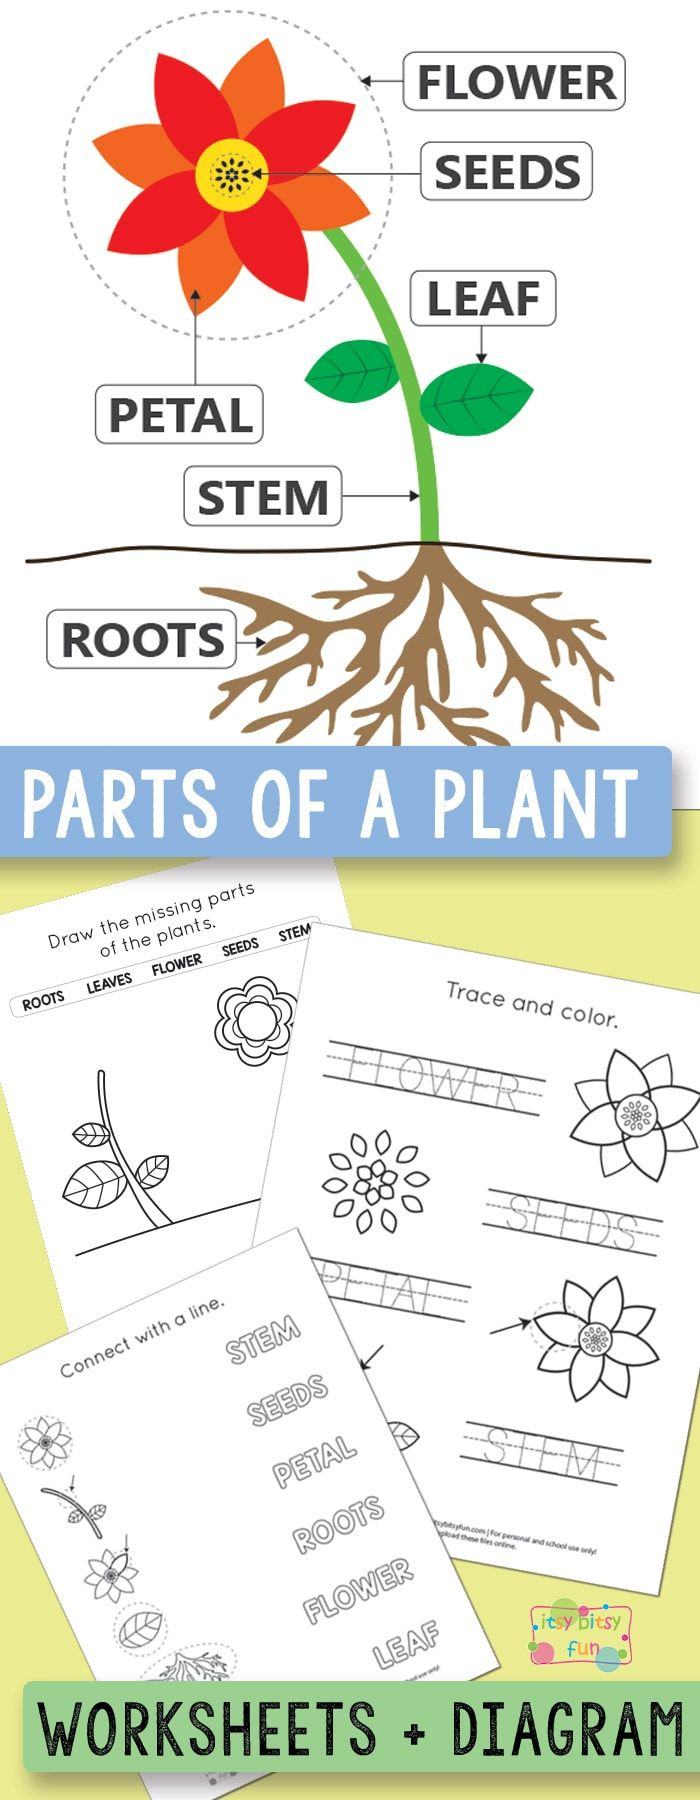 hight resolution of Free Printable Parts of a Plant Worksheets - itsybitsyfun.com   Plants  worksheets